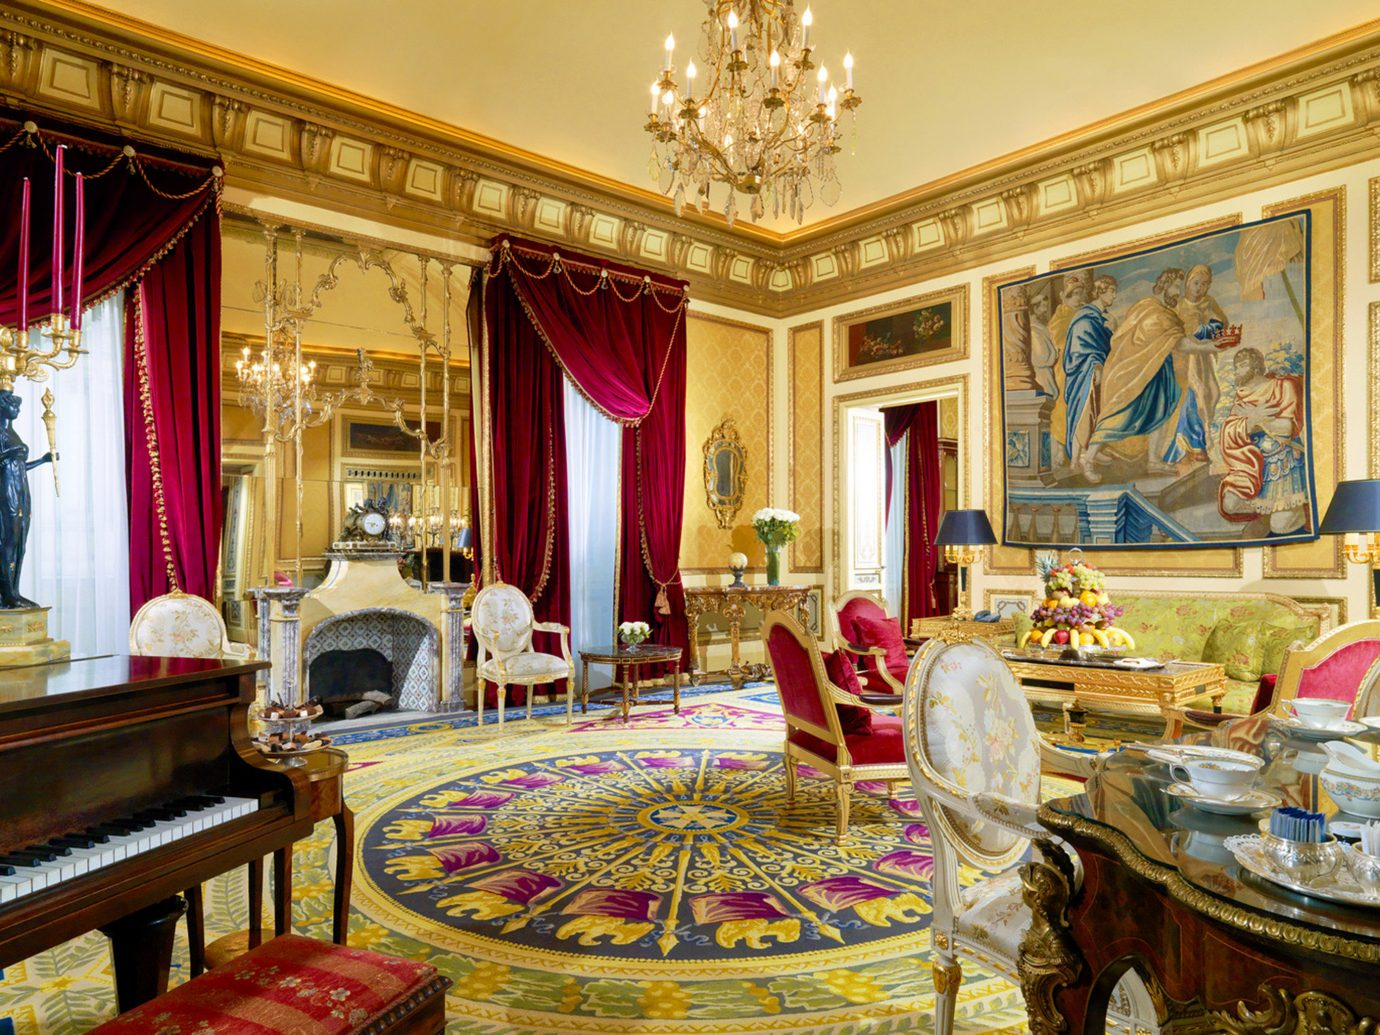 Boutique Hotels Italy Luxury Travel Romantic Hotels Rome indoor room palace Living estate Lobby interior design mansion living room ballroom furniture